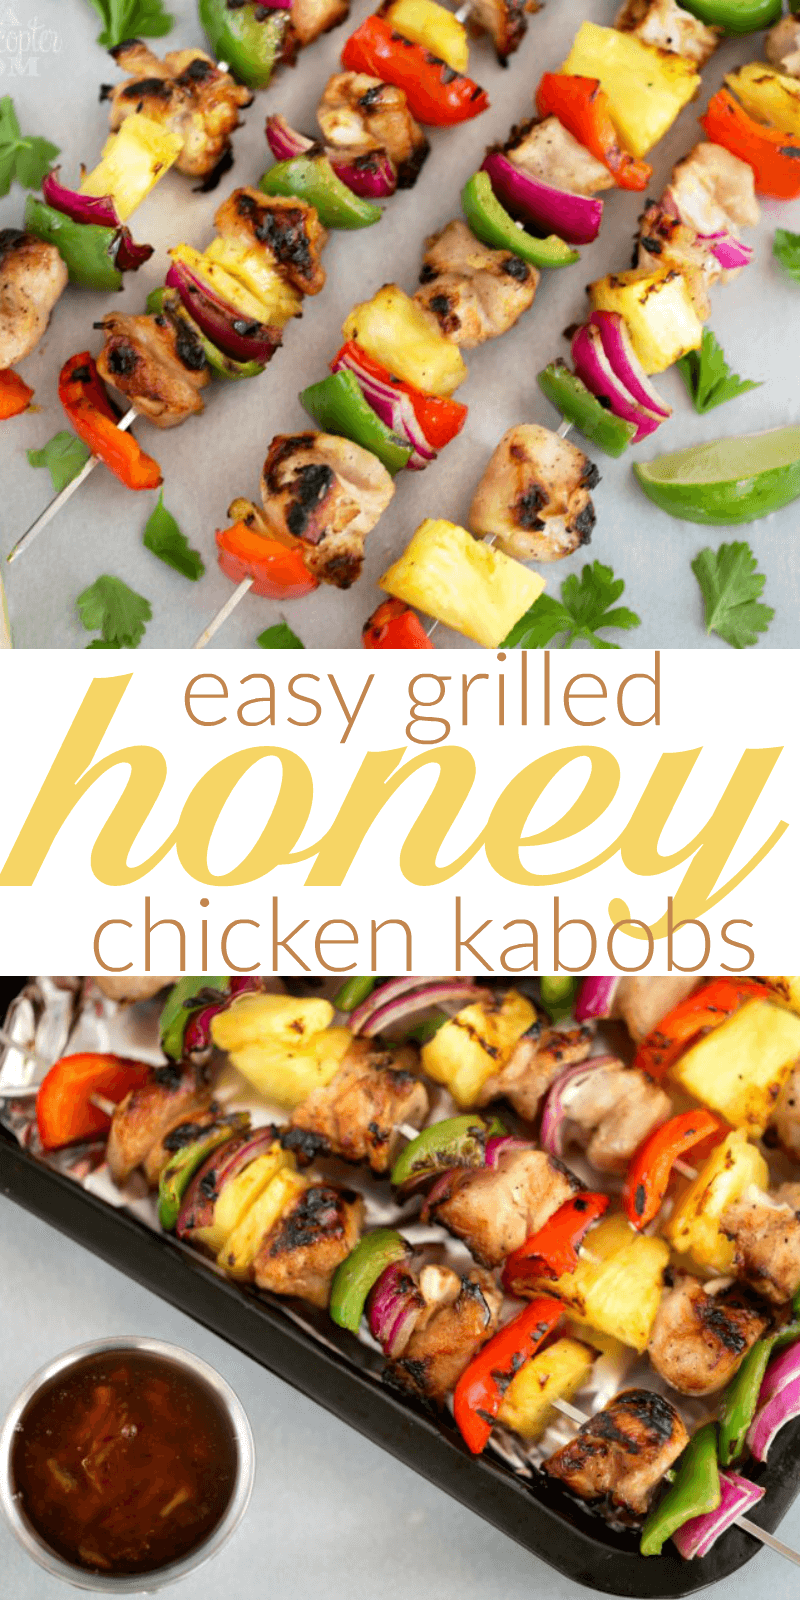 Easy Grilled Honey Chicken Kabobs - Our absolute family favorite! Such yummy flavors and easy to make!